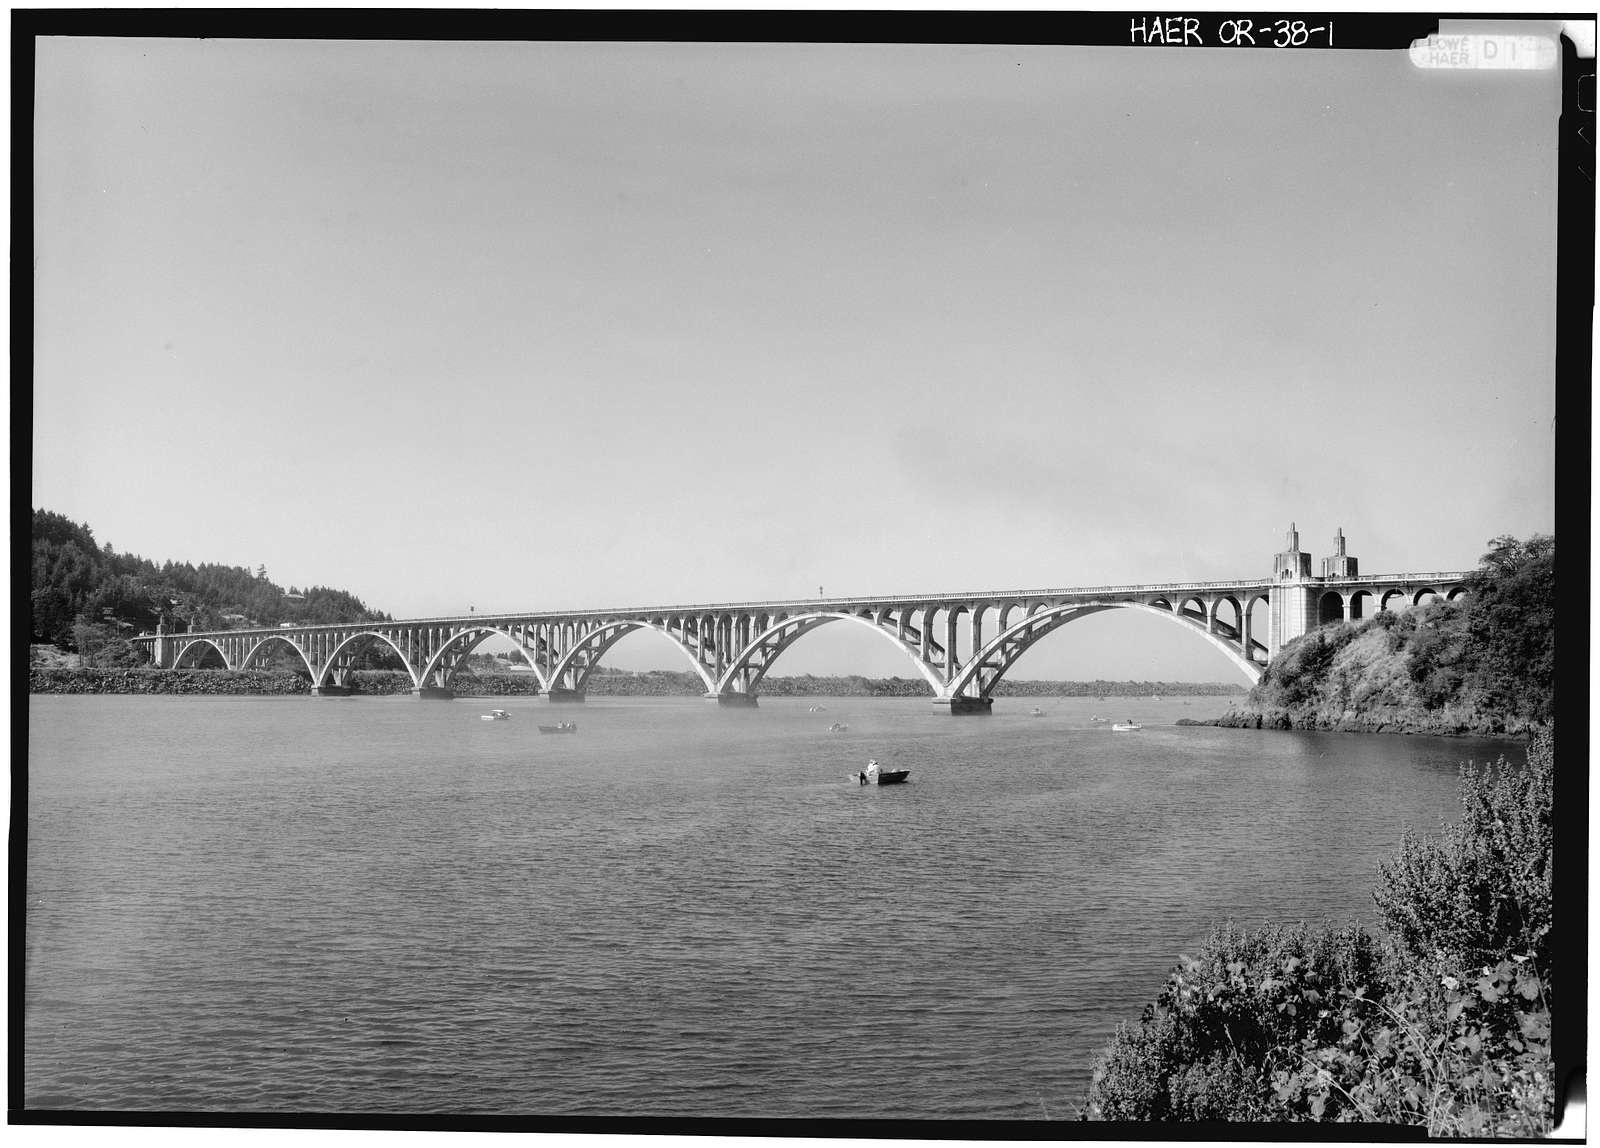 Bridge at Mouth of Rogue River, Spanning Rogue River on Oregon Coast Highway, Gold Beach, Curry County, OR